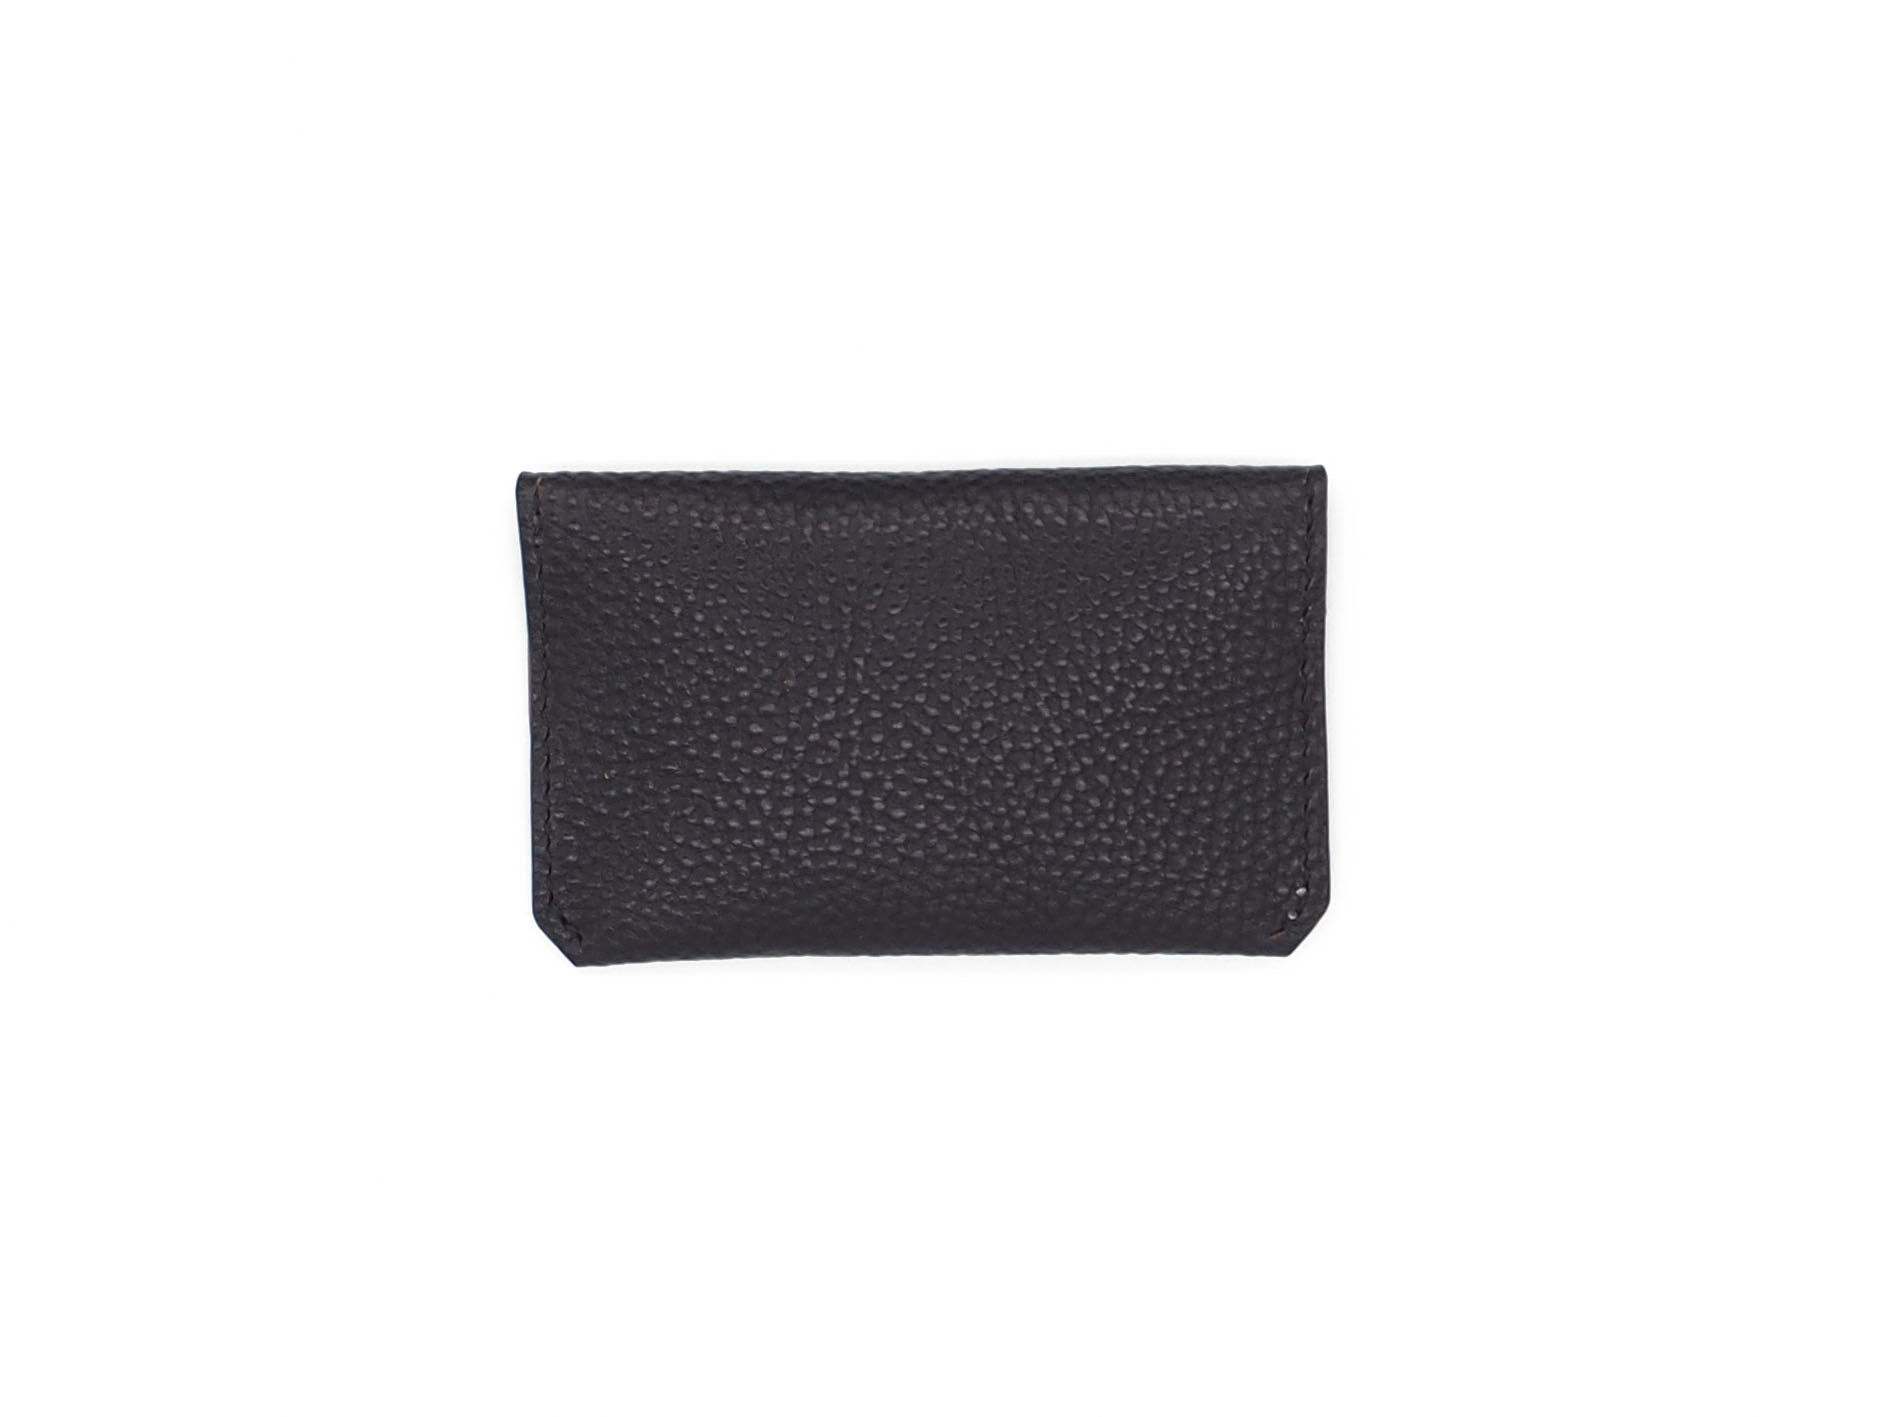 Bodega- Envelope Wallet In Pebbled Black